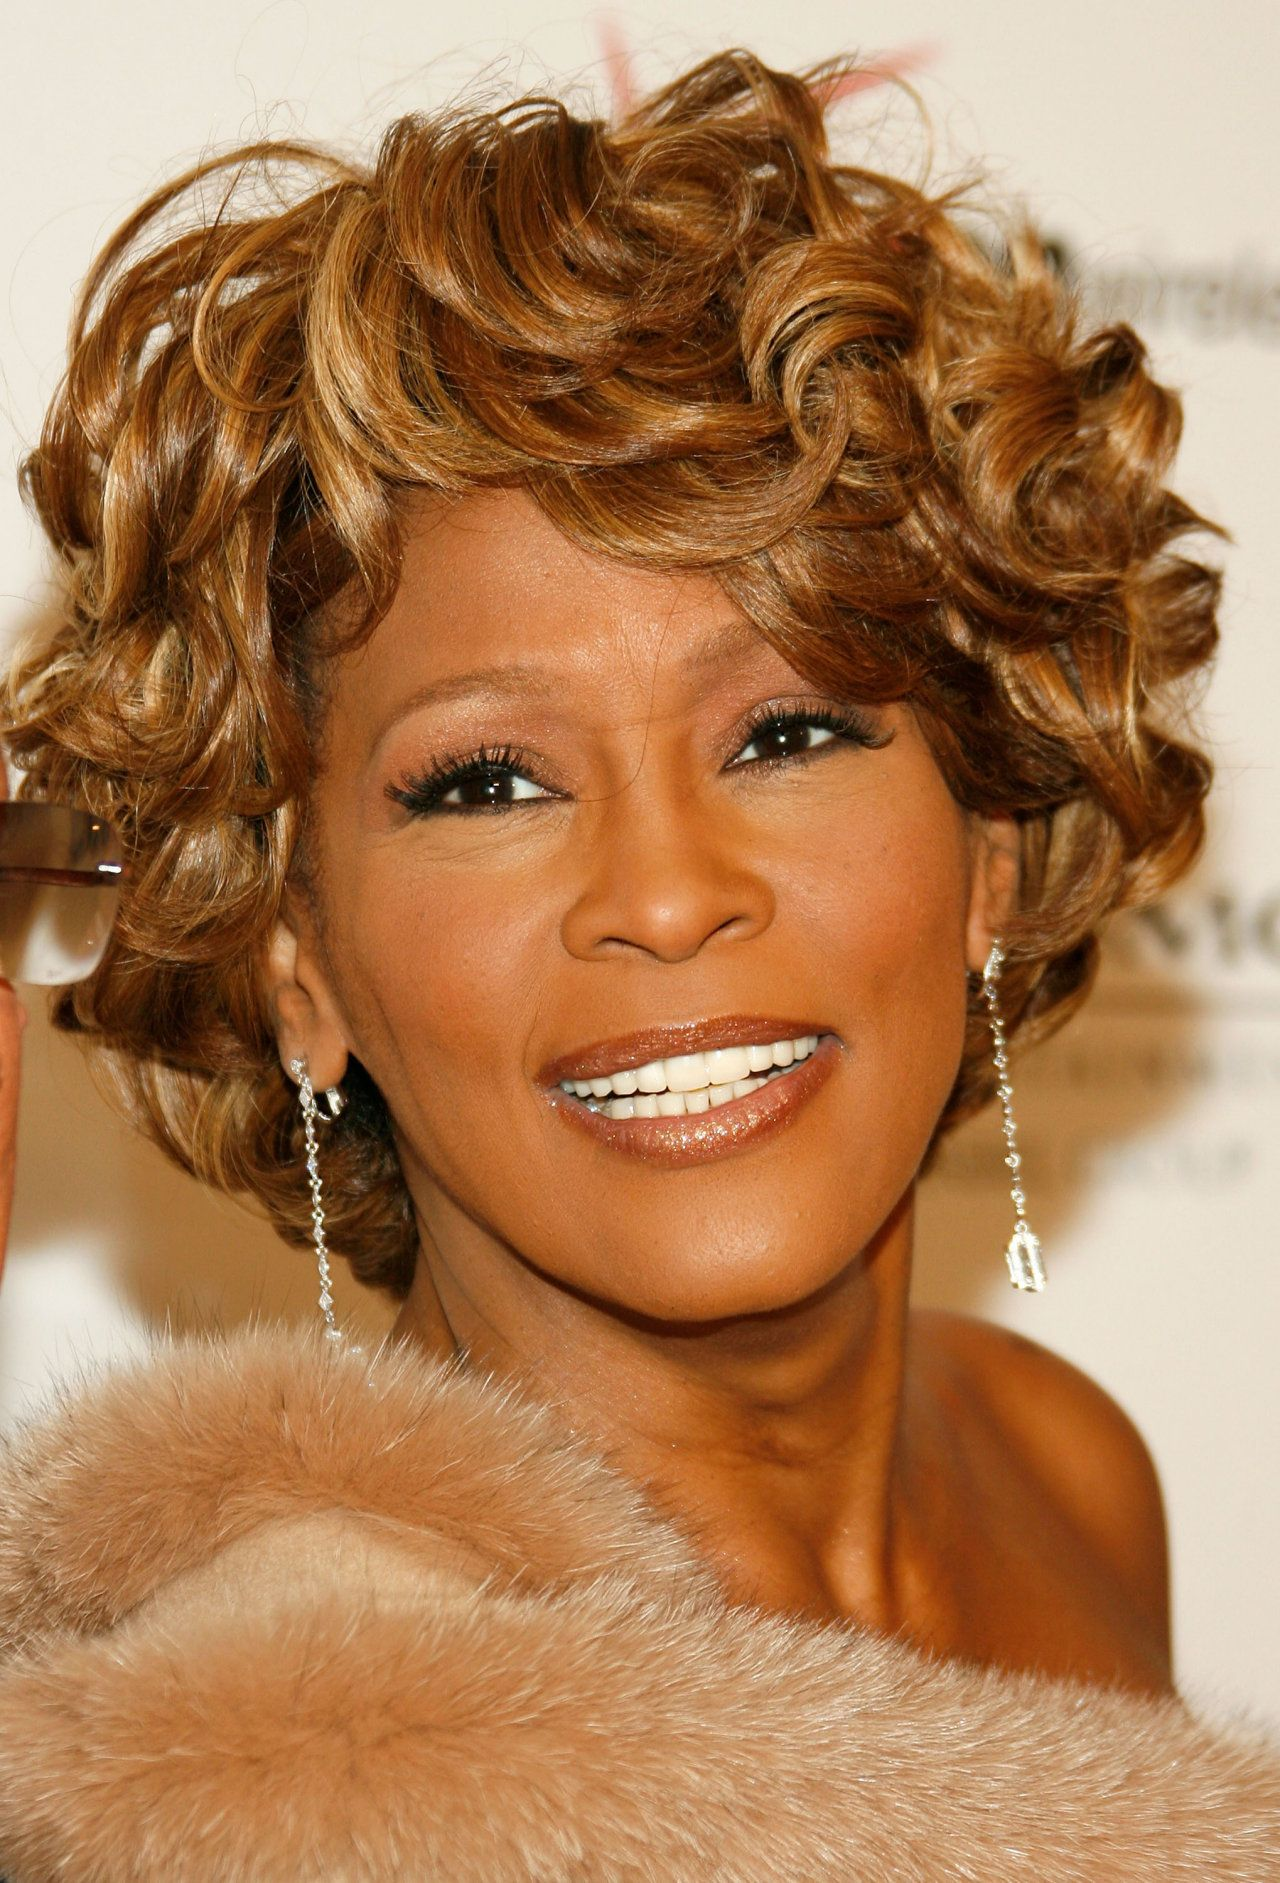 whitney houston | whitney houston | pinterest | whitney houston